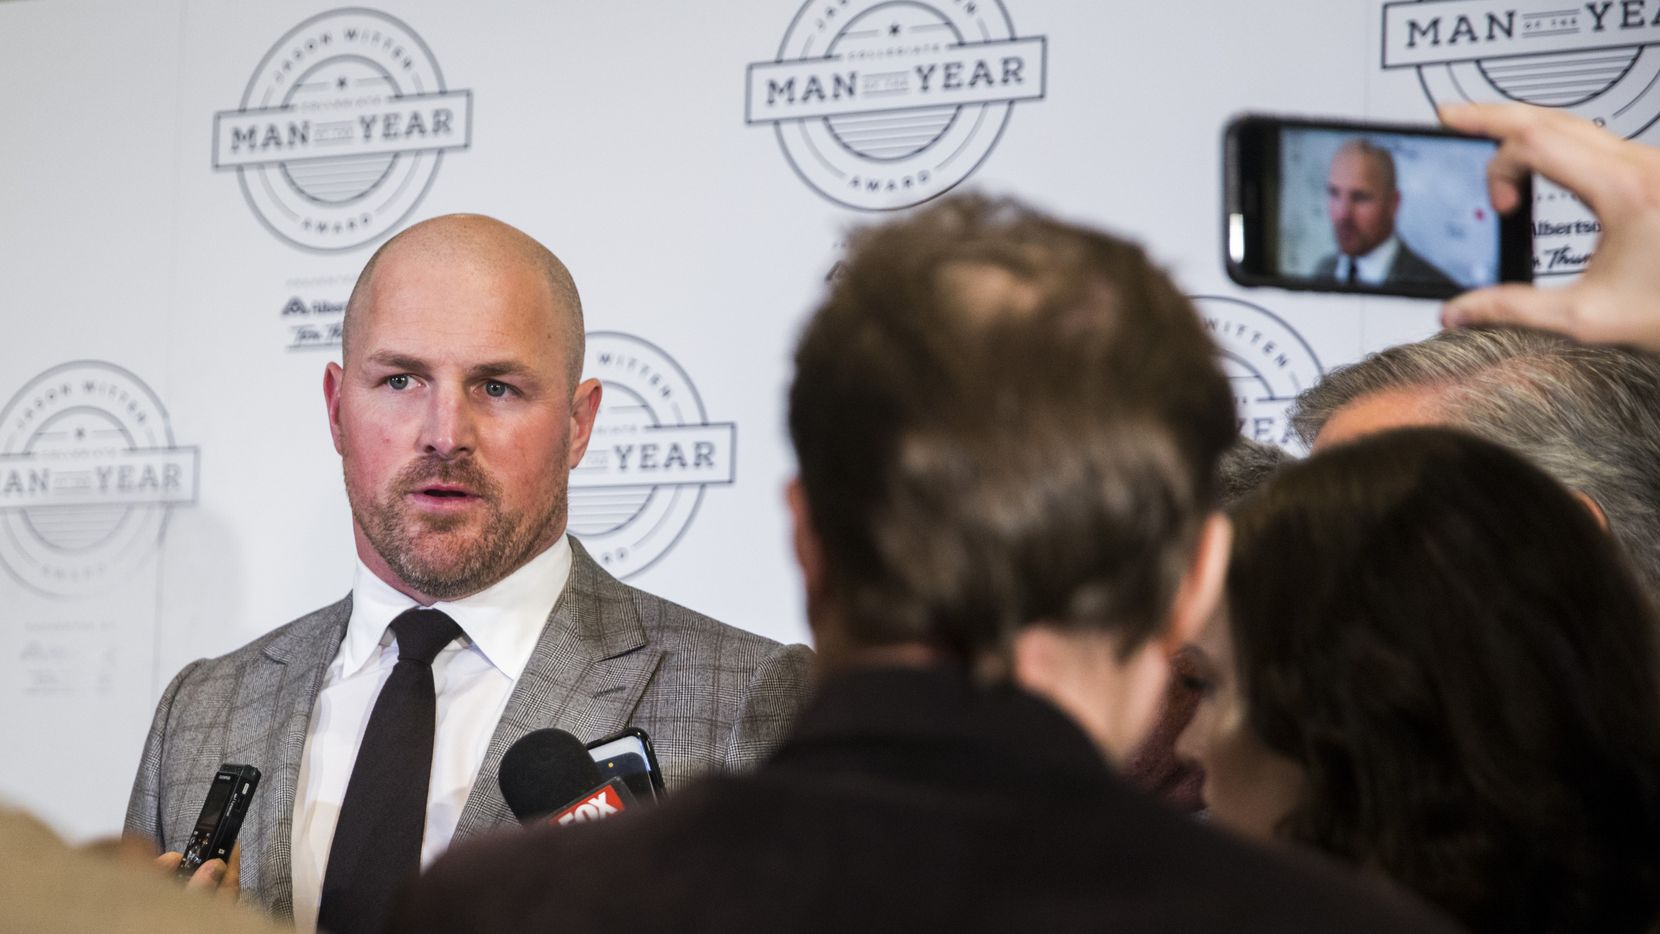 Dallas Cowboys tight end Jason Witten speaks to reporters during media availability before the Jason Witten Collegiate Man of the Year Award ceremony on Tuesday, February 18, 2020 at The Star in Frisco.